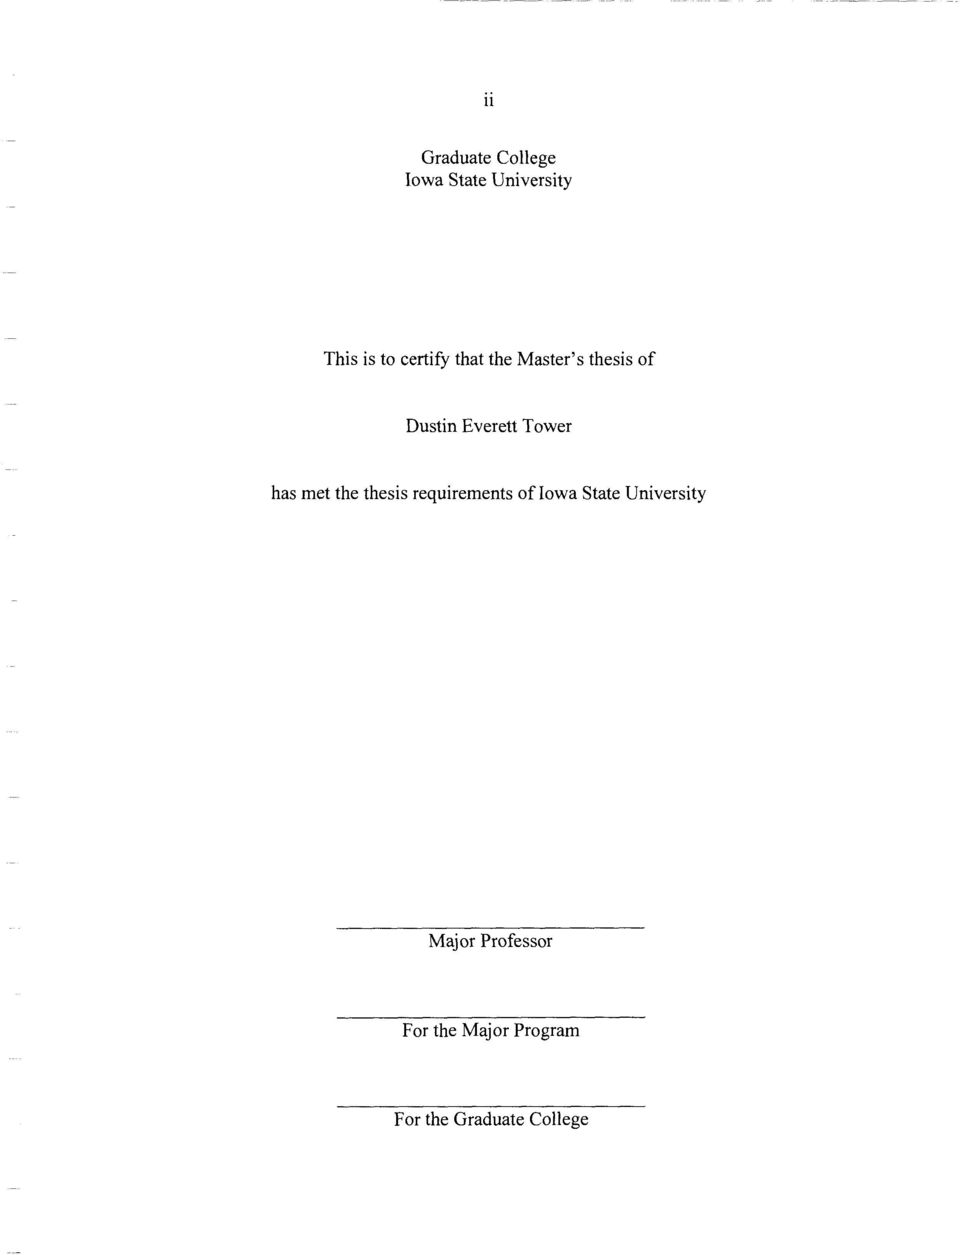 dissertation requirements analysis A registrar administration system requirements analysis and product recommendation for marine corps university, quantico, va by master's thesis 4 nwc naval war college.